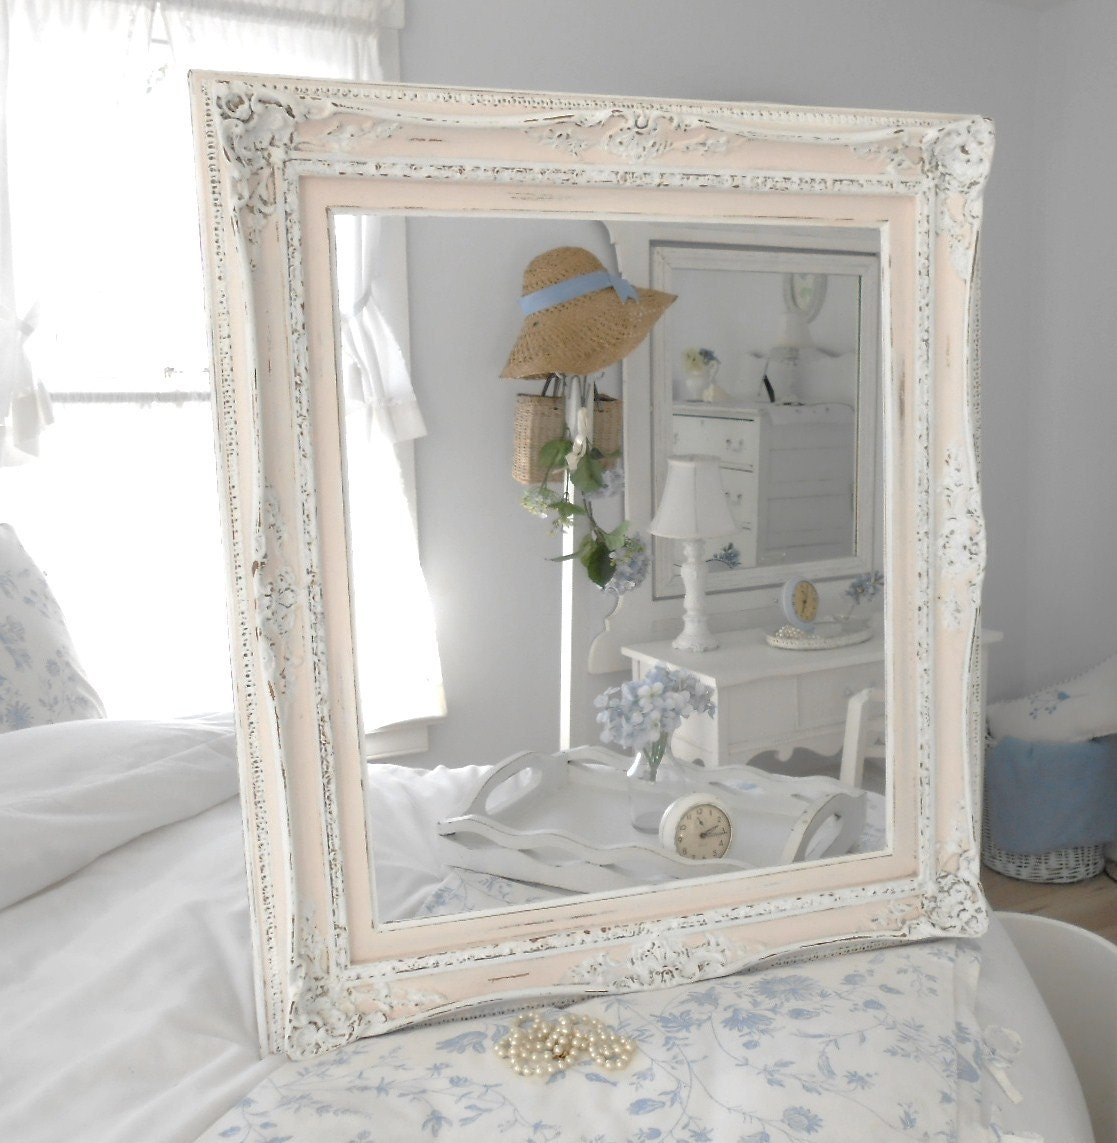 frame shabby chic furniture home decor for mirror or art. Black Bedroom Furniture Sets. Home Design Ideas